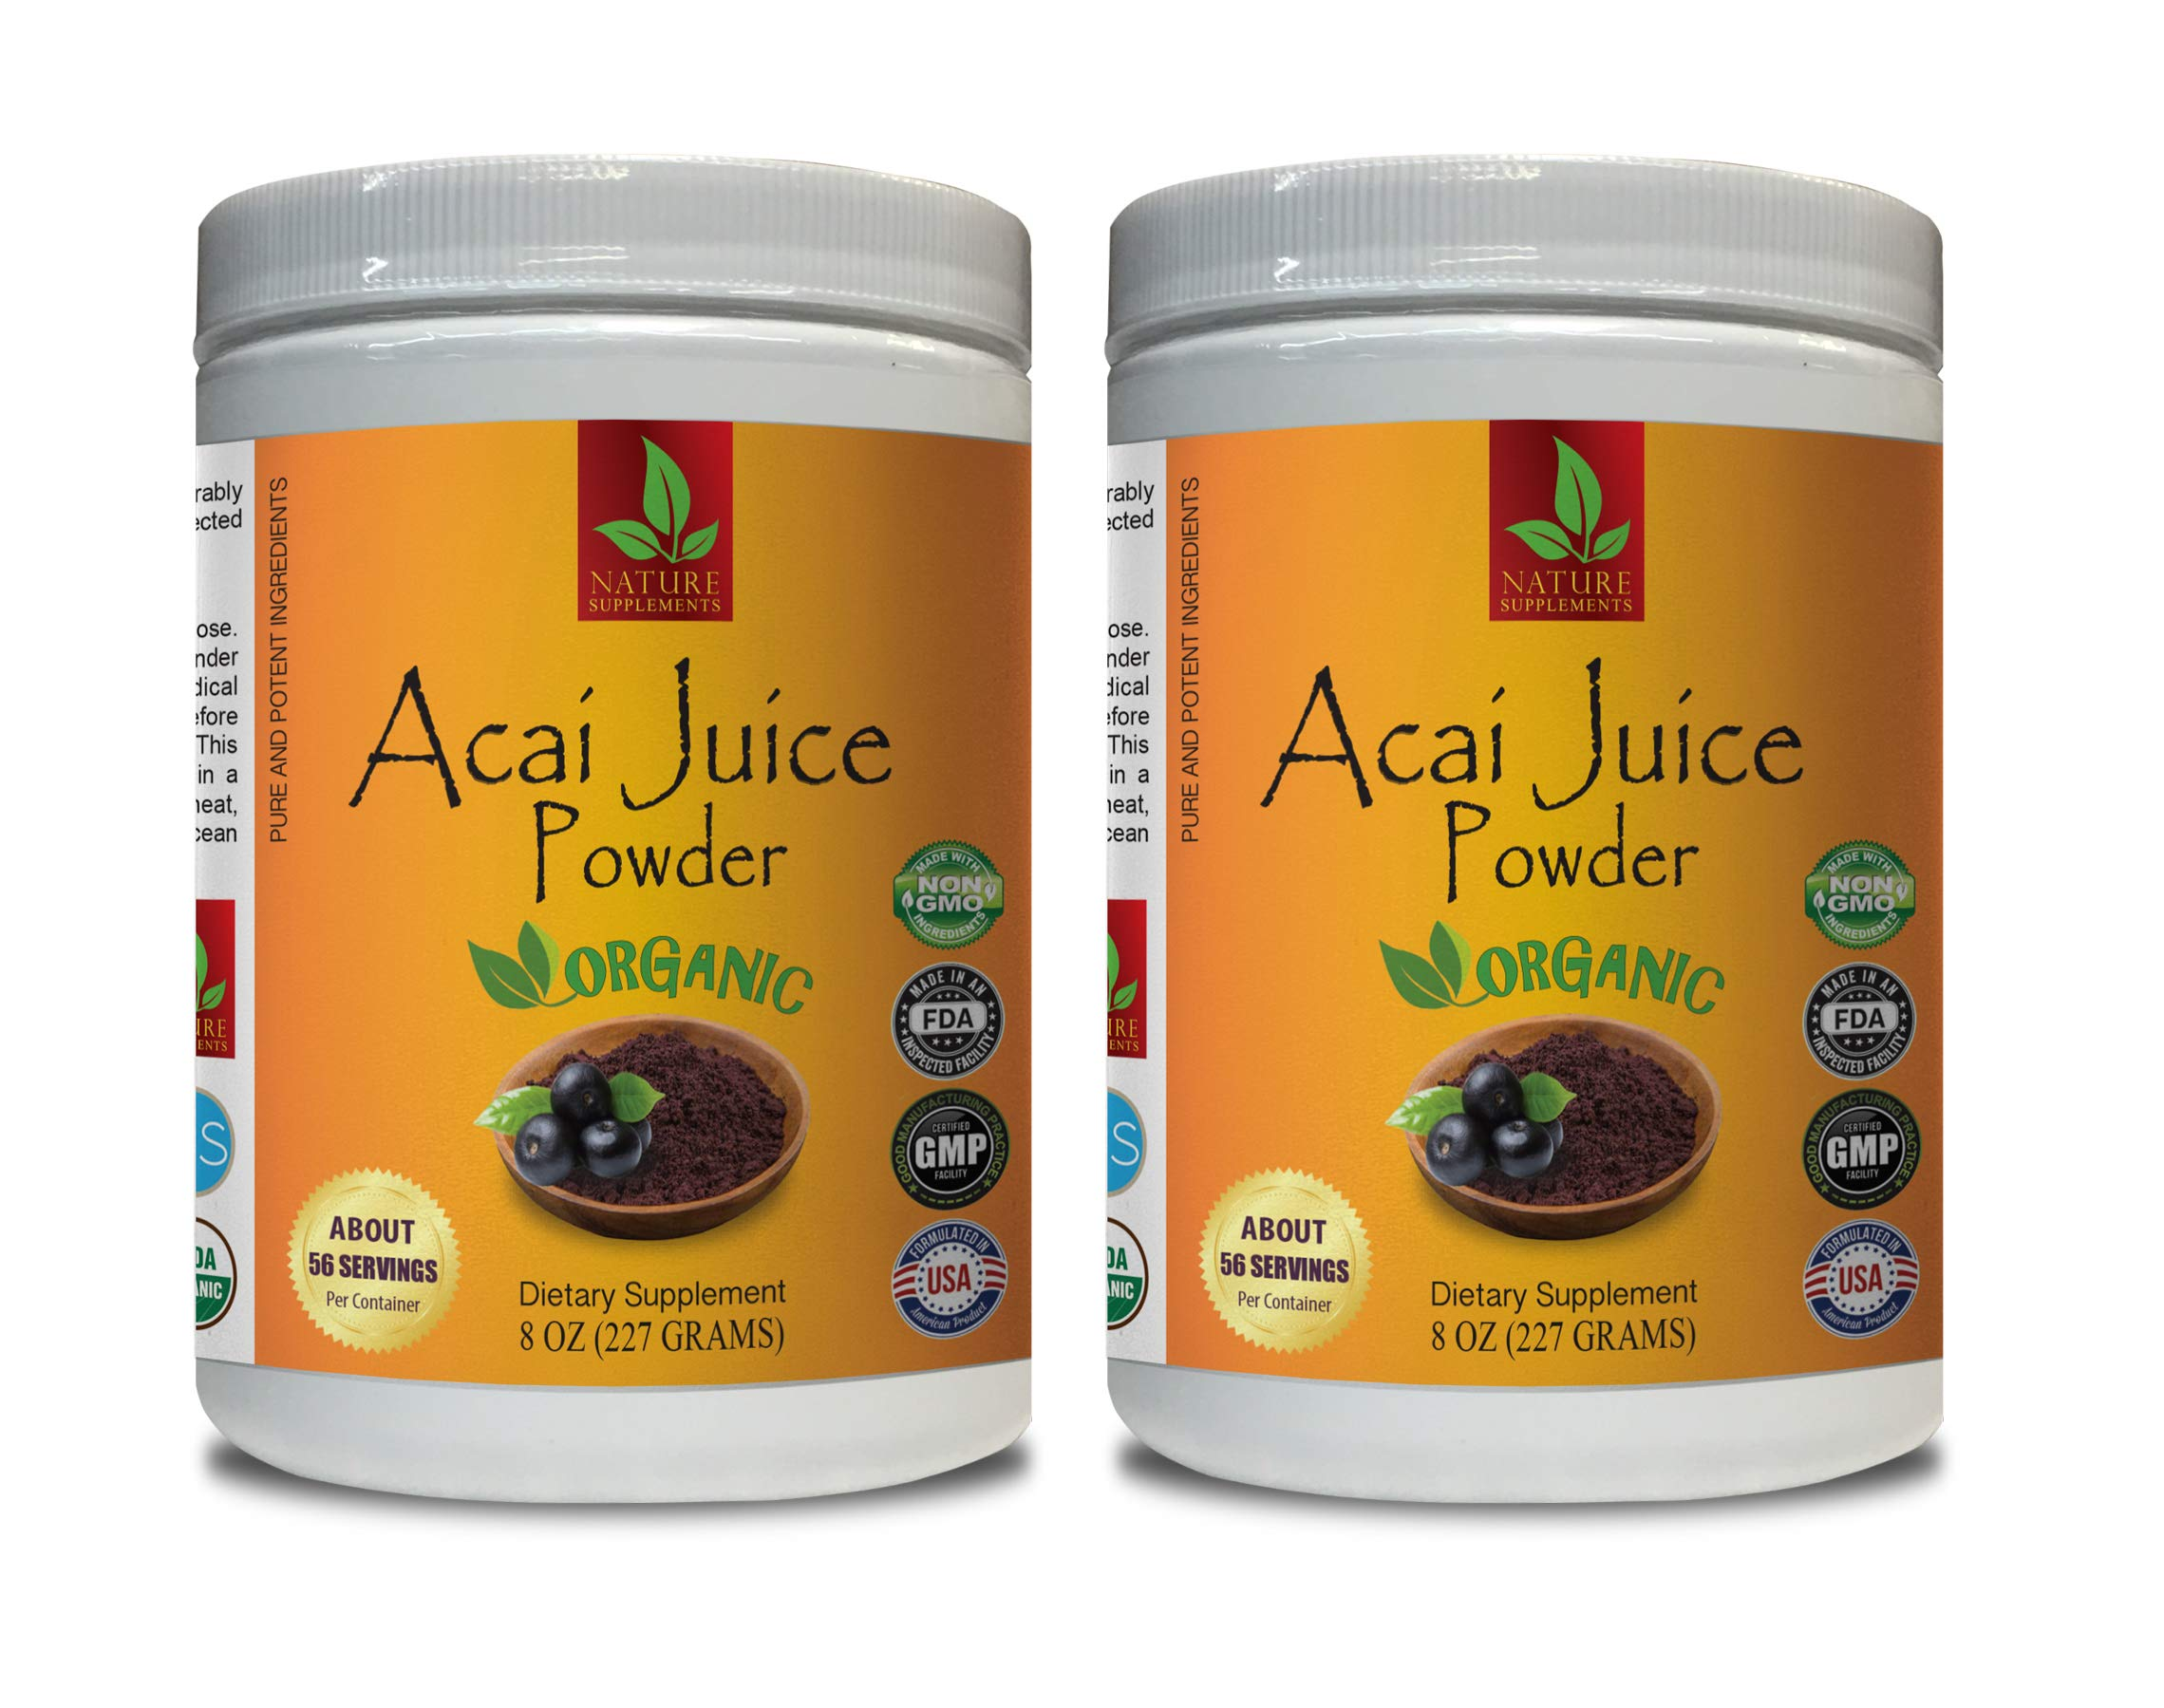 antioxidant Powder Organic - ACAI Organic Juice Powder - Pure and Potent Ingredients - acai Supplement Organic - 2 Cans 16 OZ (130 Servings)